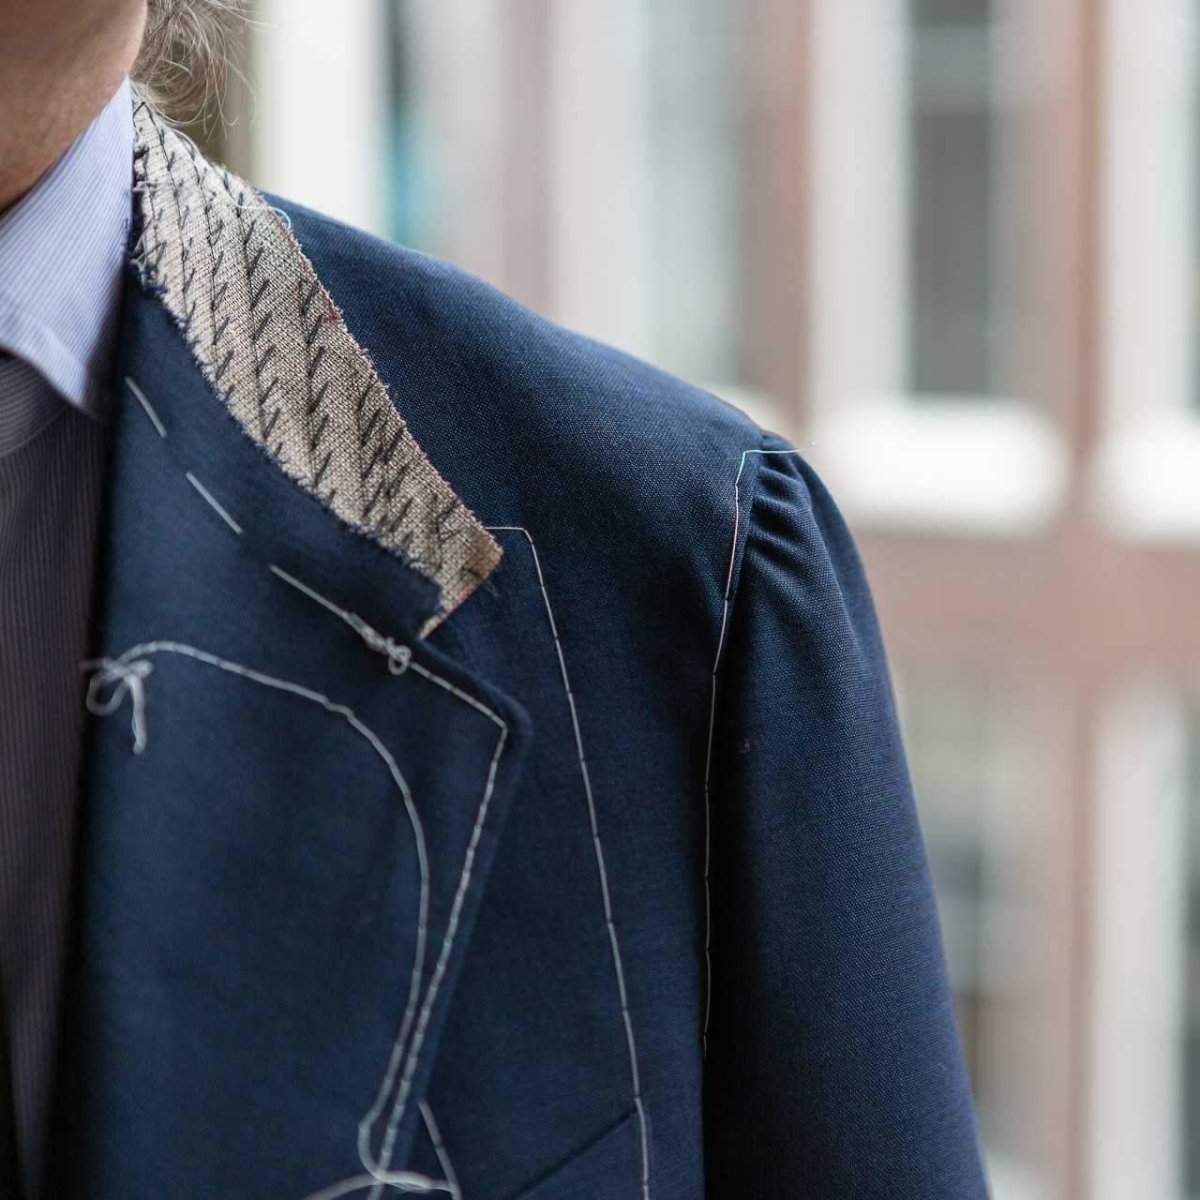 NEW TAILOR - Pak, Dormeuil, Pakken | NEW TAILOR Webshop